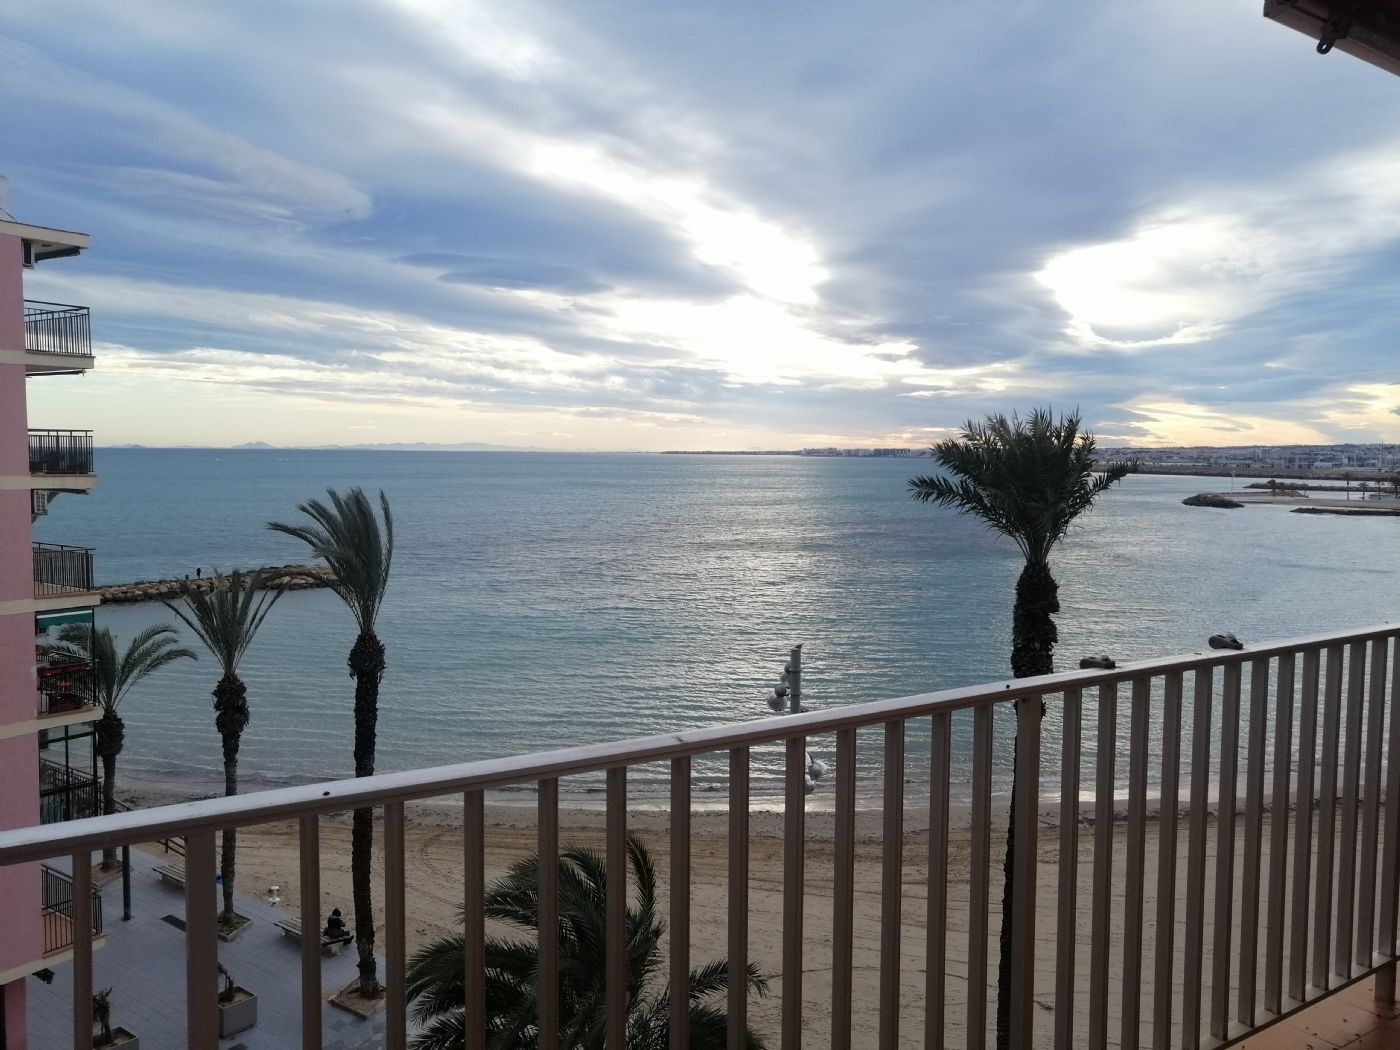 Apartamento en Calle timonel, 1. Beachfront apartment